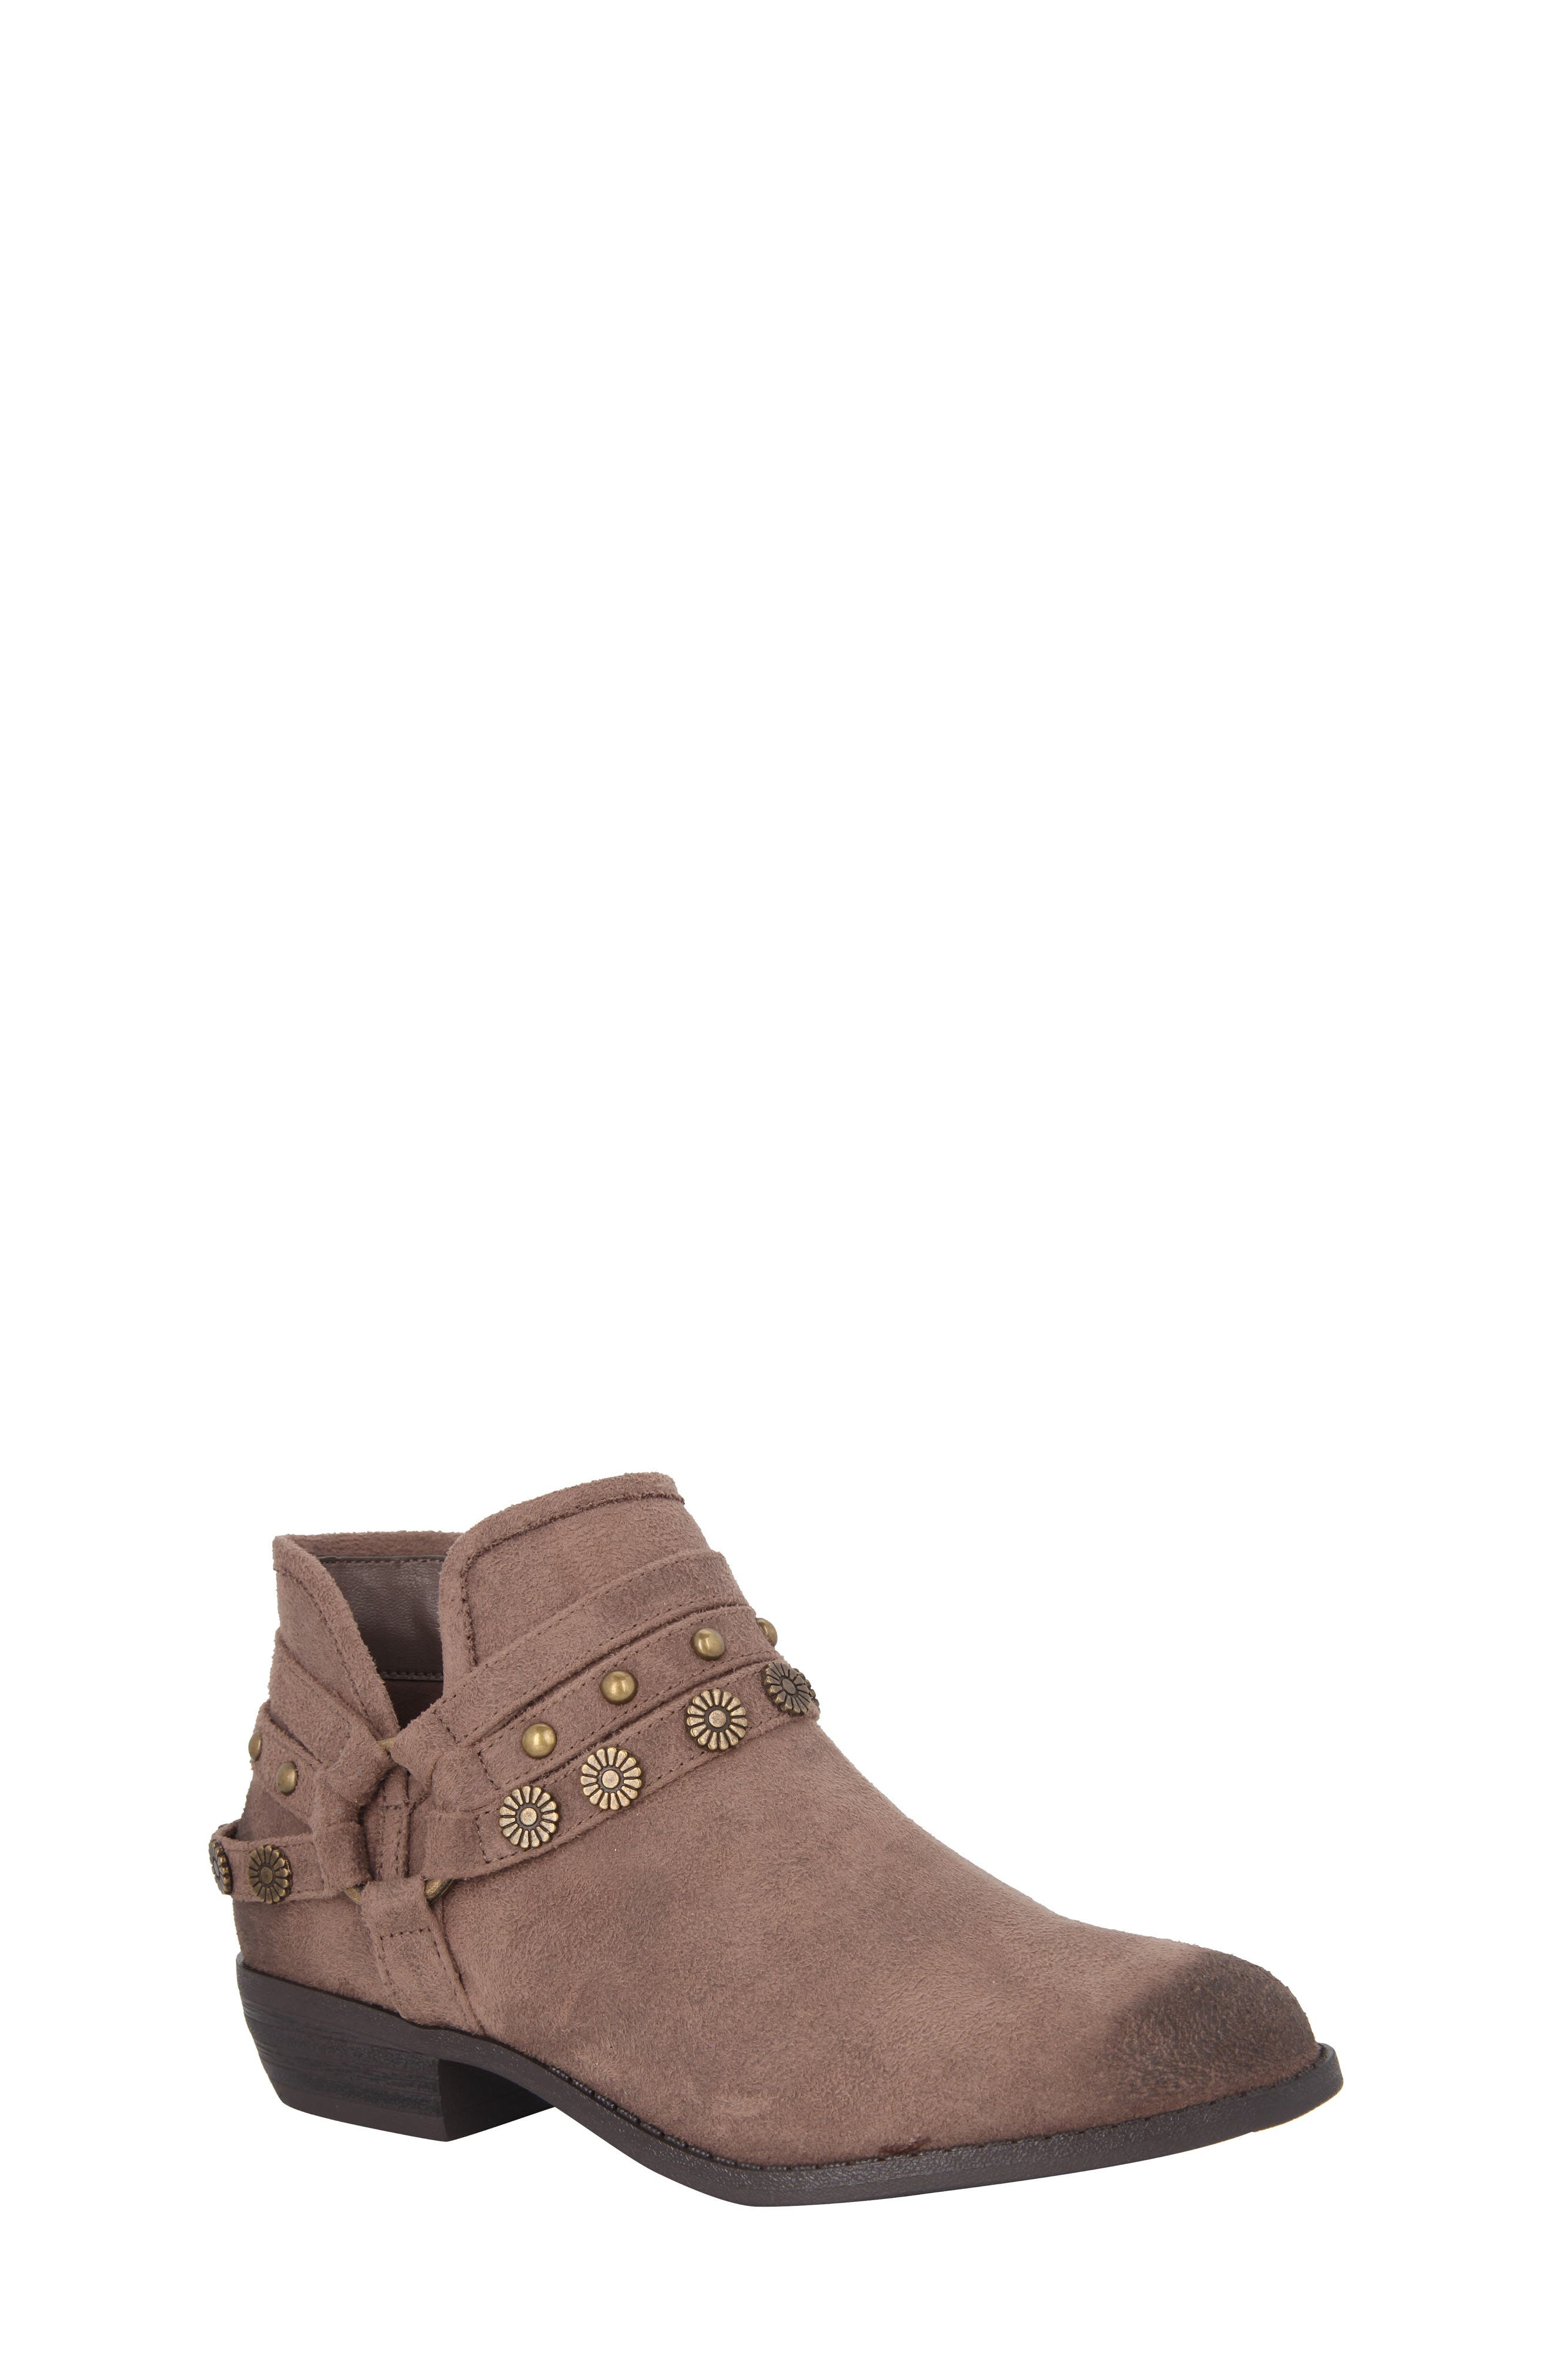 Zoe Strappy Low Bootie,                             Main thumbnail 2, color,